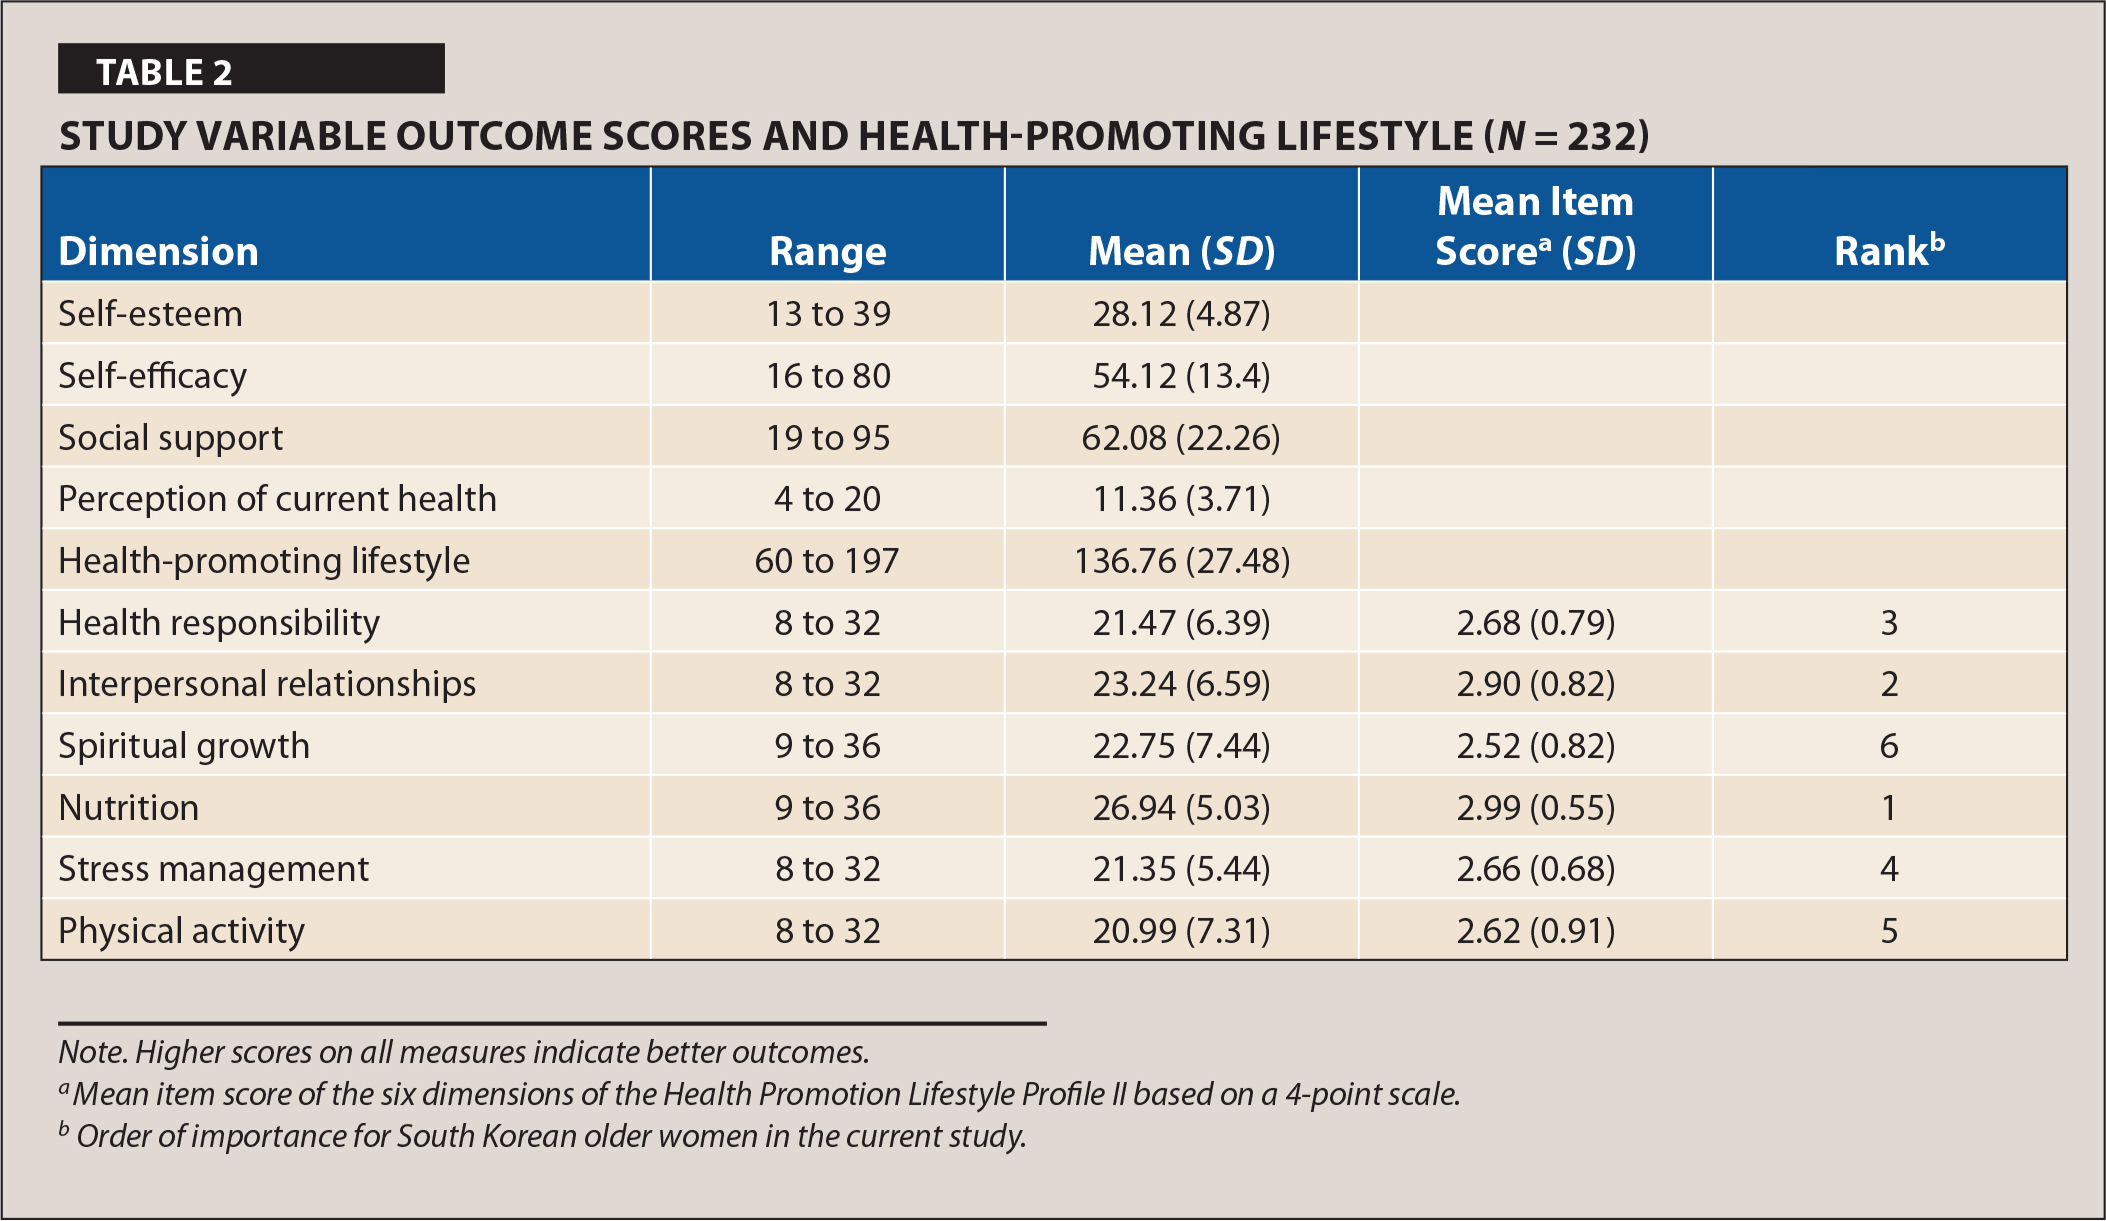 Study Variable Outcome Scores and Health-Promoting Lifestyle (N = 232)